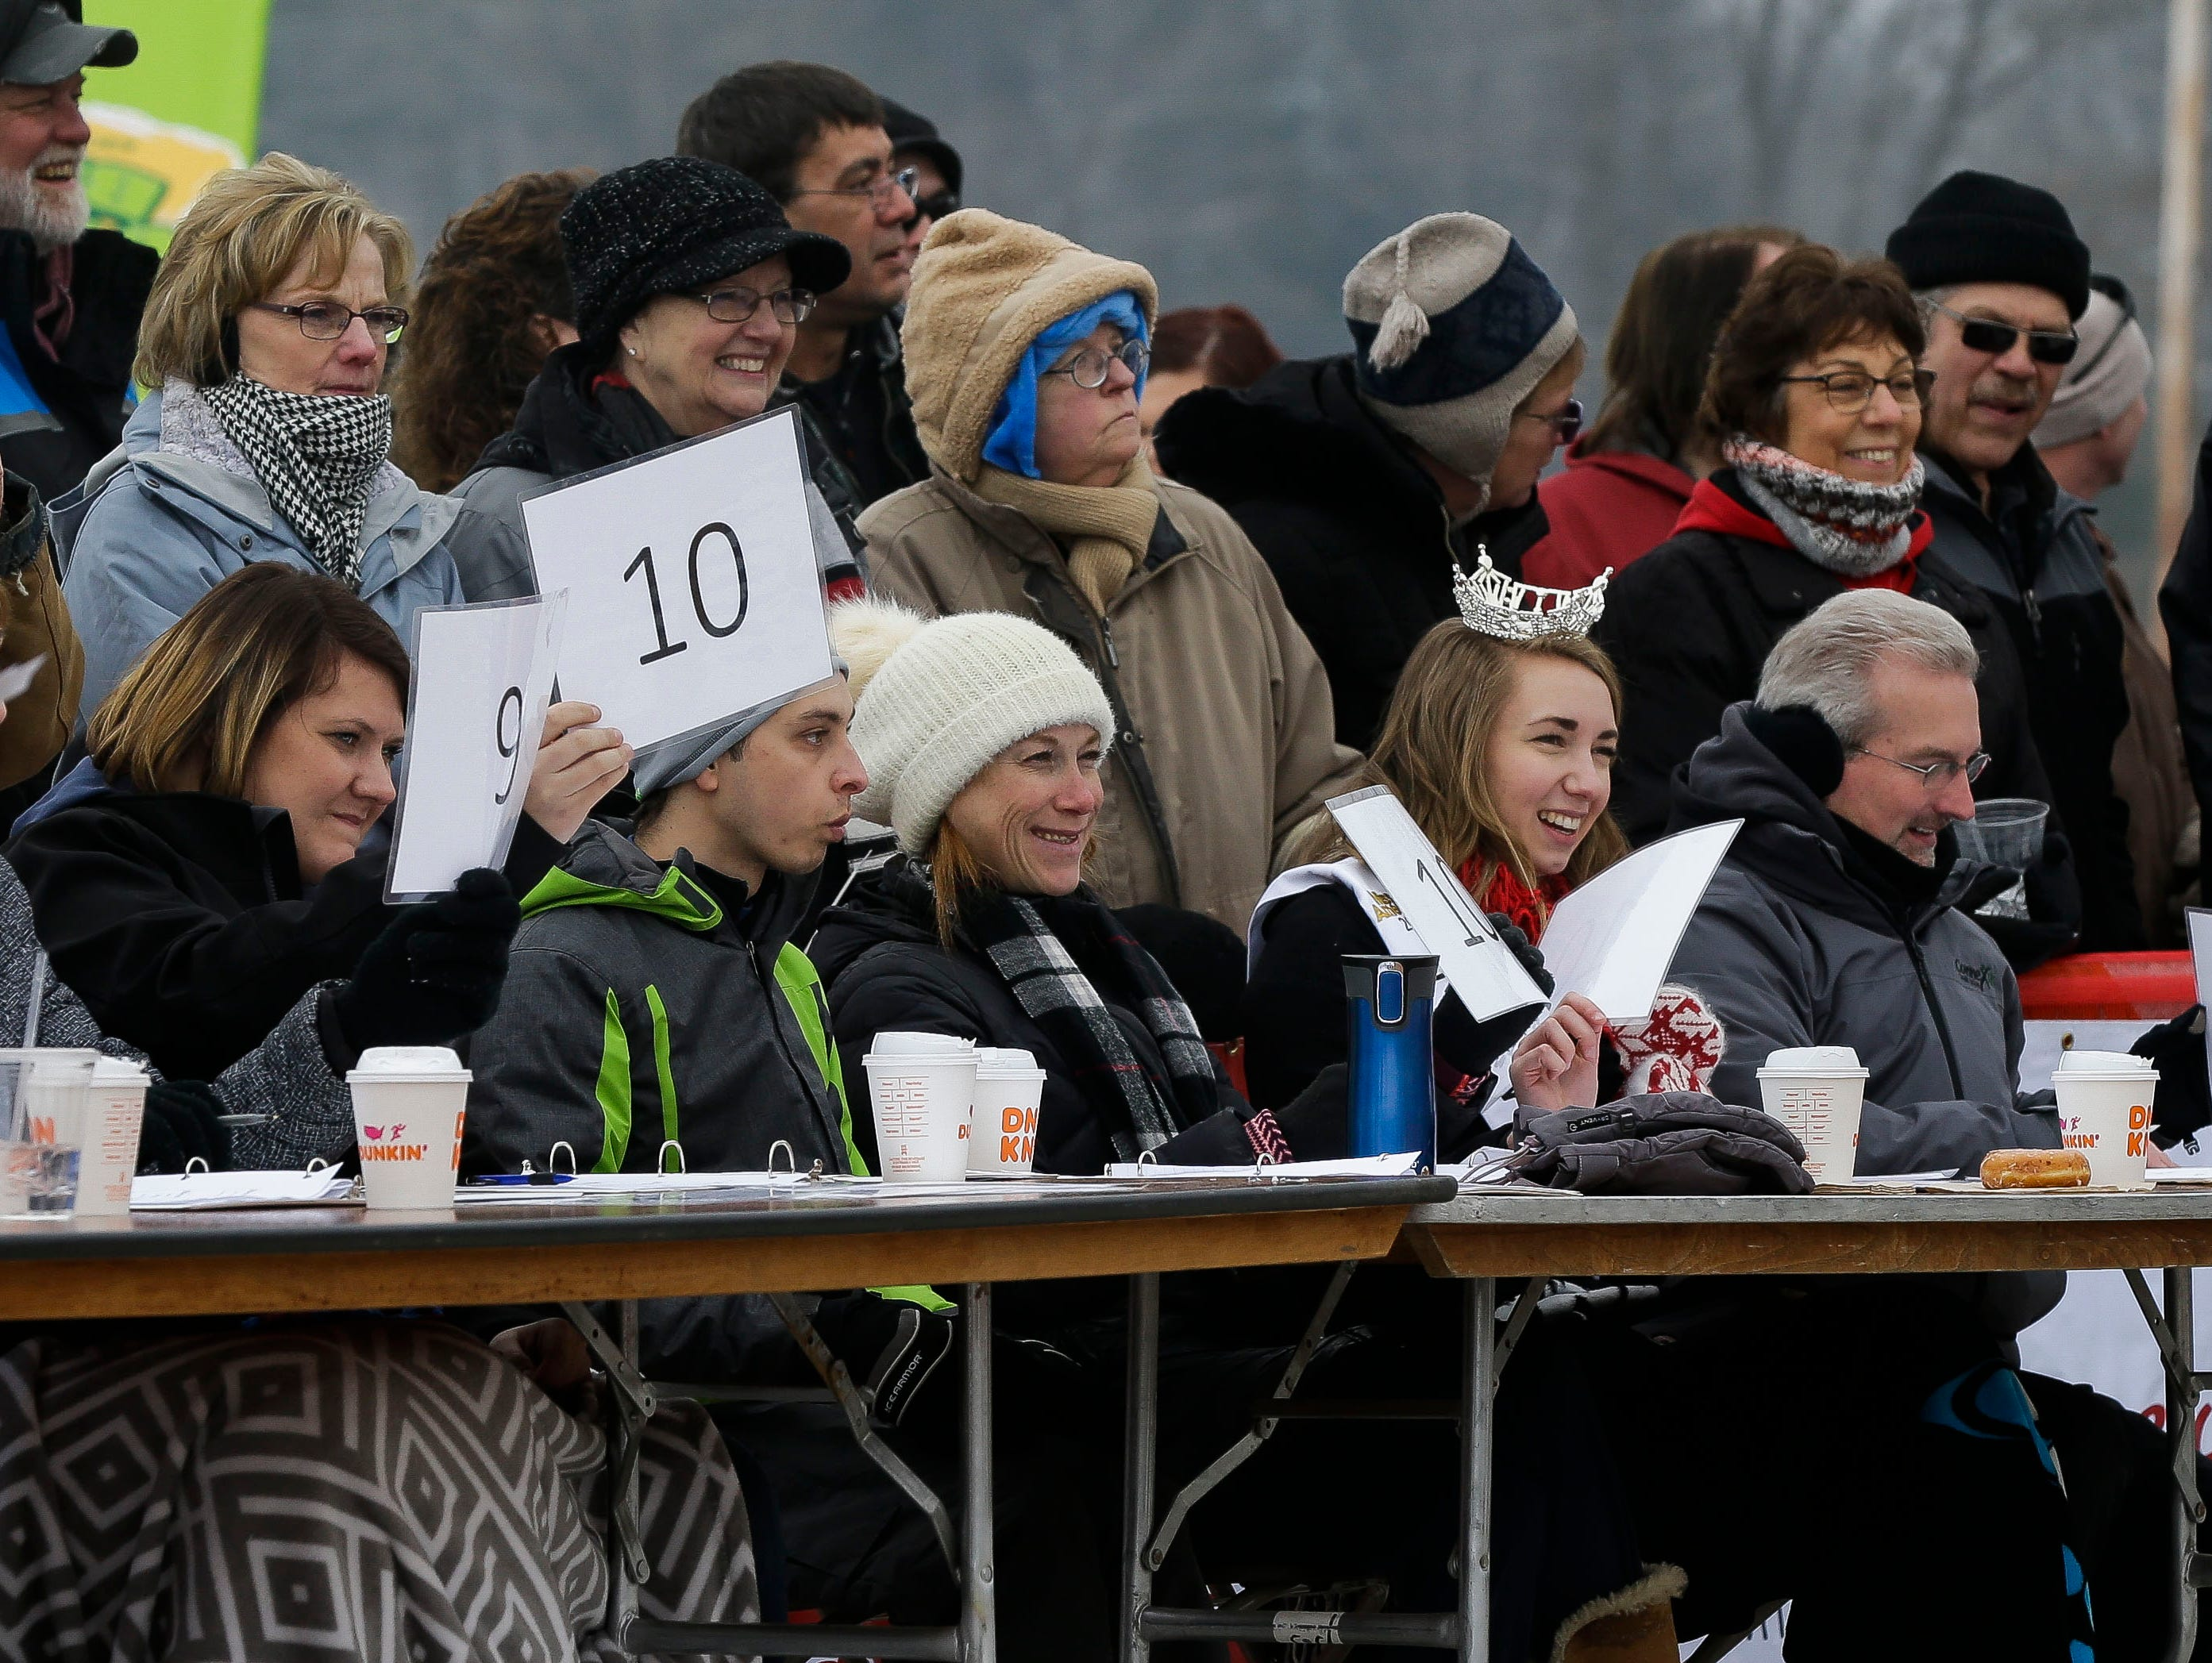 Polar plunge judges present their scores on Saturday, February 2, 2019, at Anchor Bay Bar and Grill in Biron, Wis. The event was one of many polar plunges across the state held as fundraisers for Special Olympics Wisconsin.Tork Mason/USA TODAY NETWORK-Wisconsin